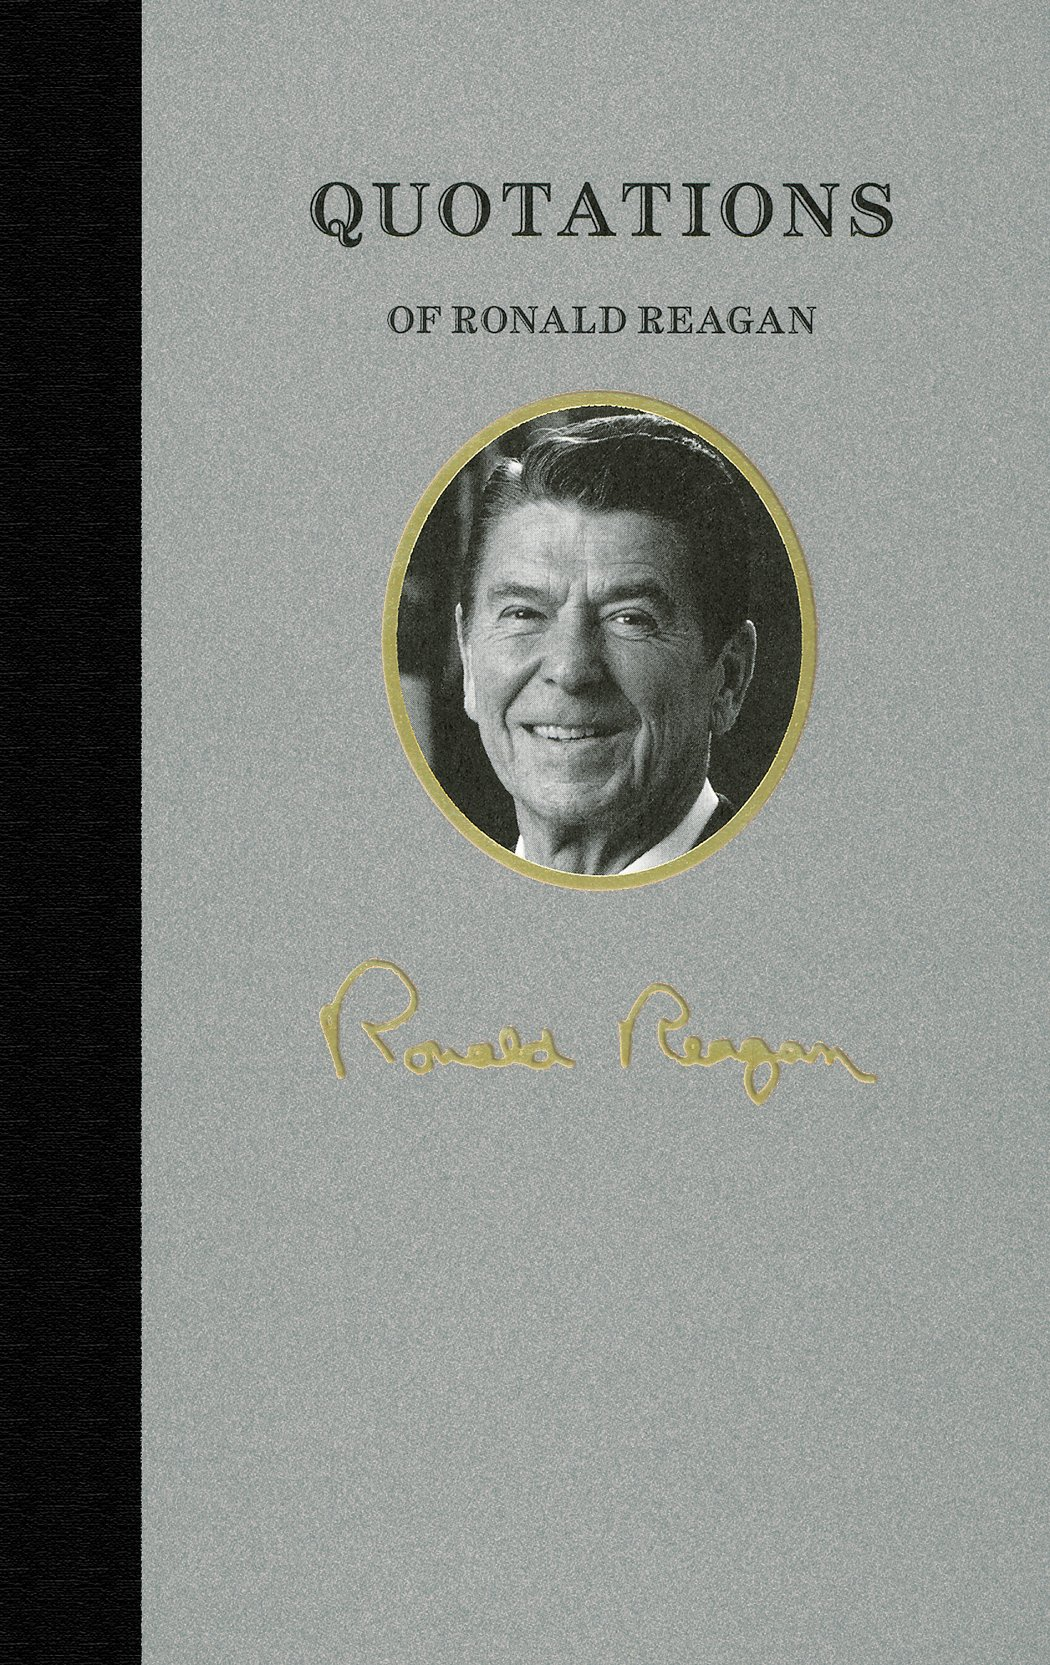 amazon com quotations of ronald reagan great american quote books